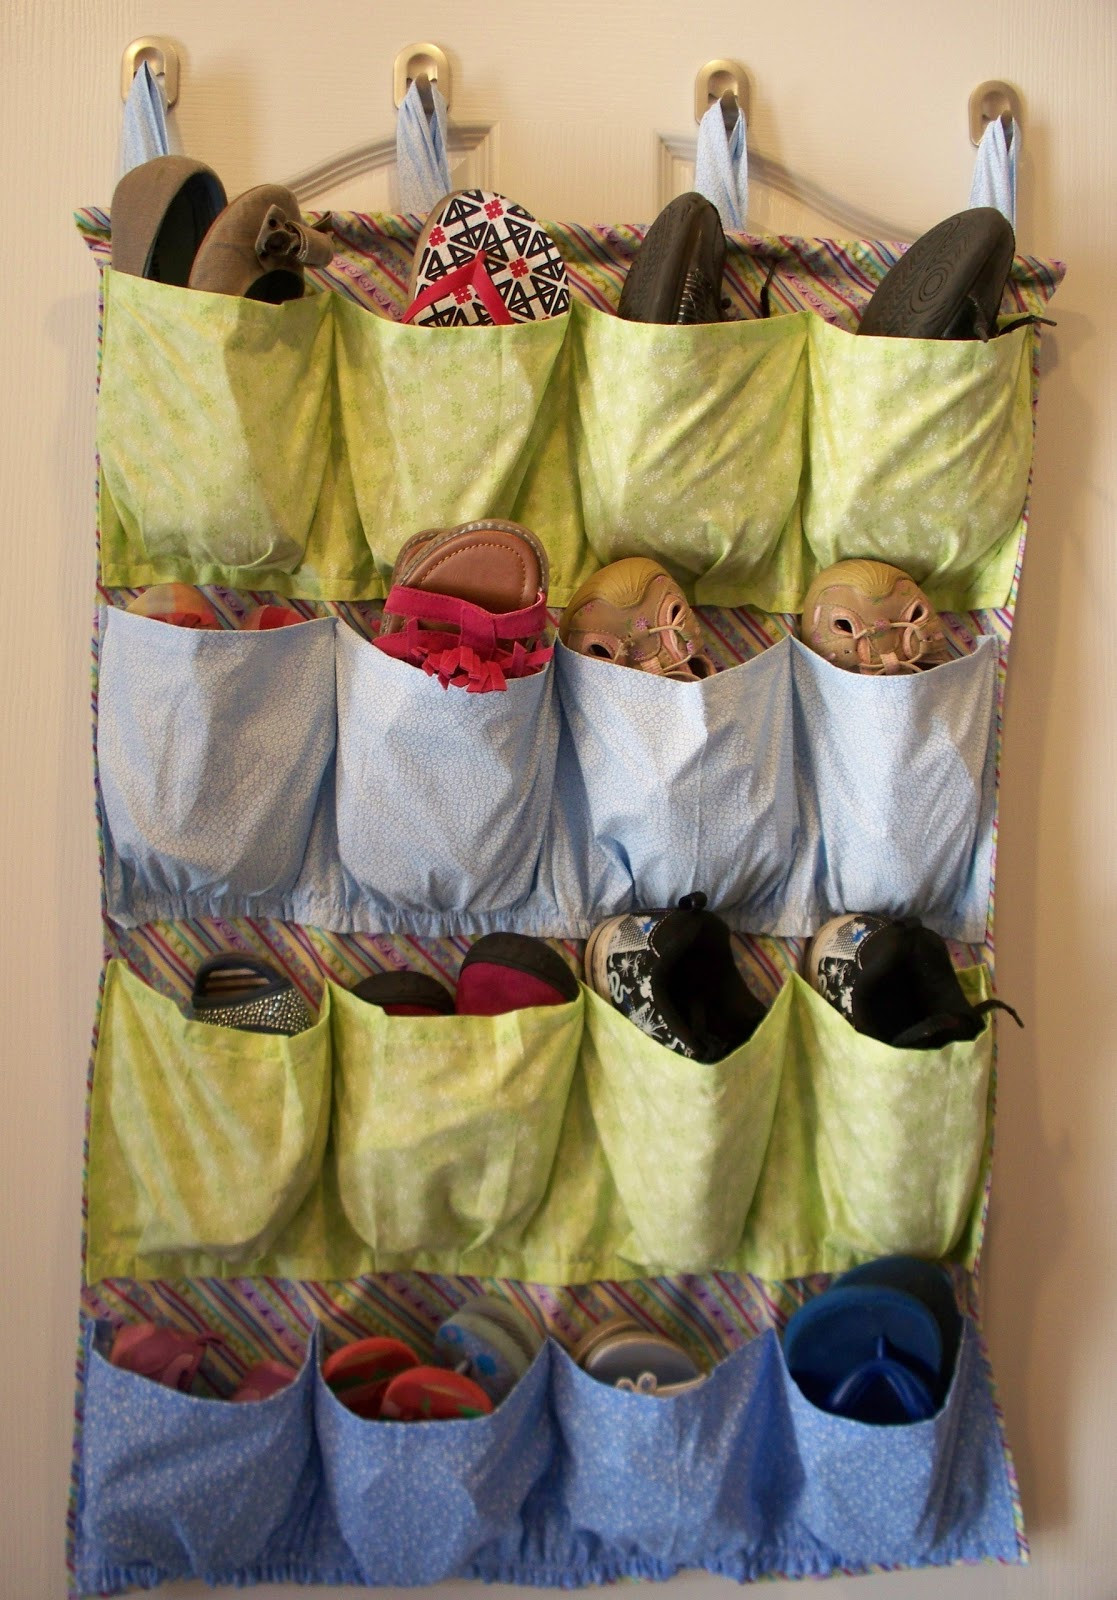 Best ideas about Shoes Organizer DIY . Save or Pin Sew It Yourself Shoe Organizer Adventures of a DIY Mom Now.